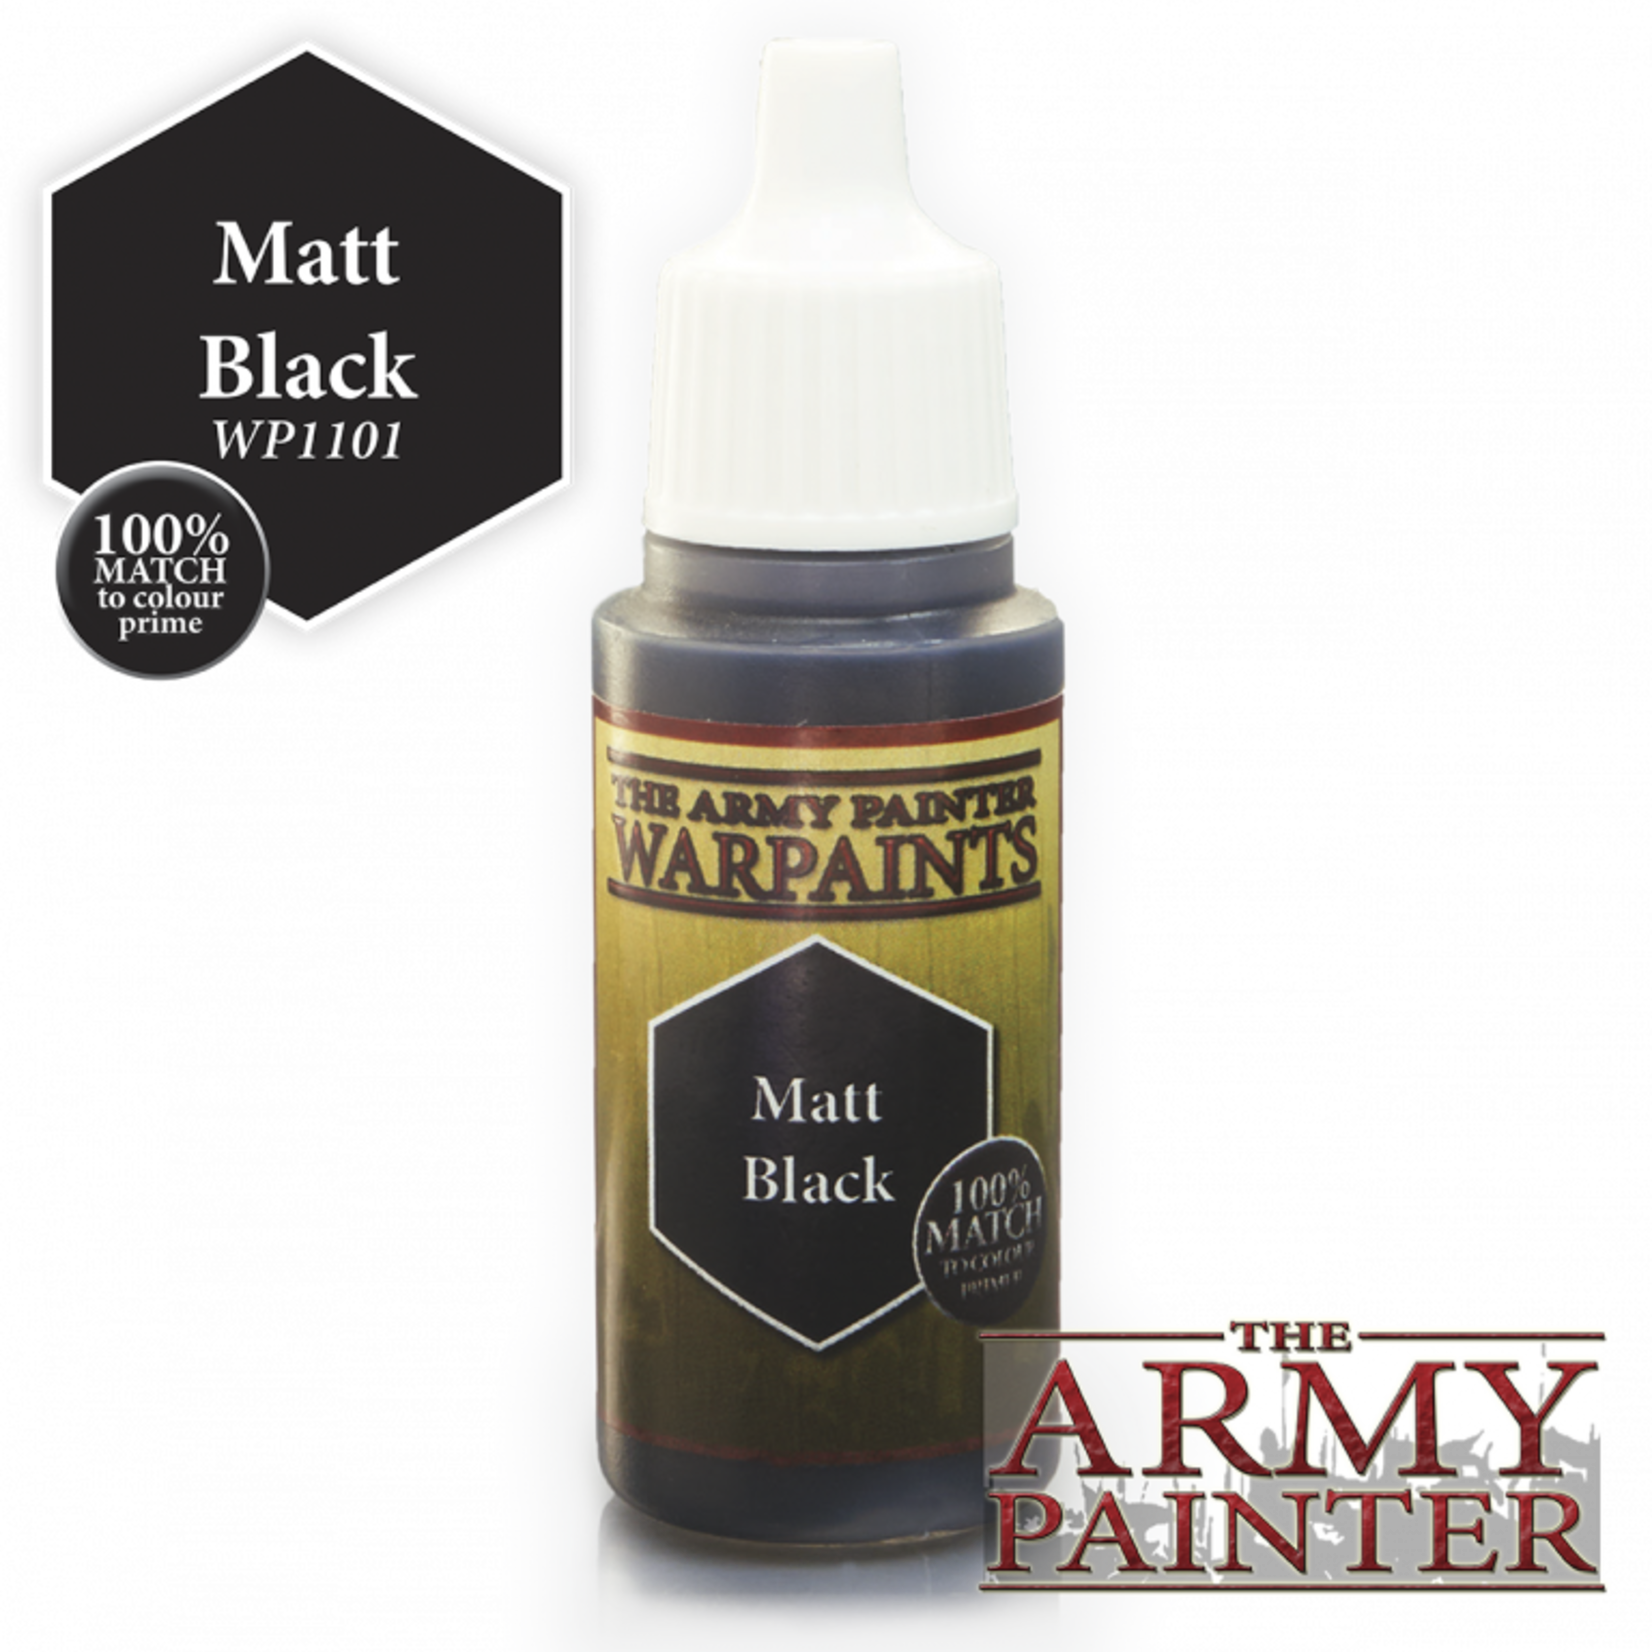 The Army Painter Matte Black